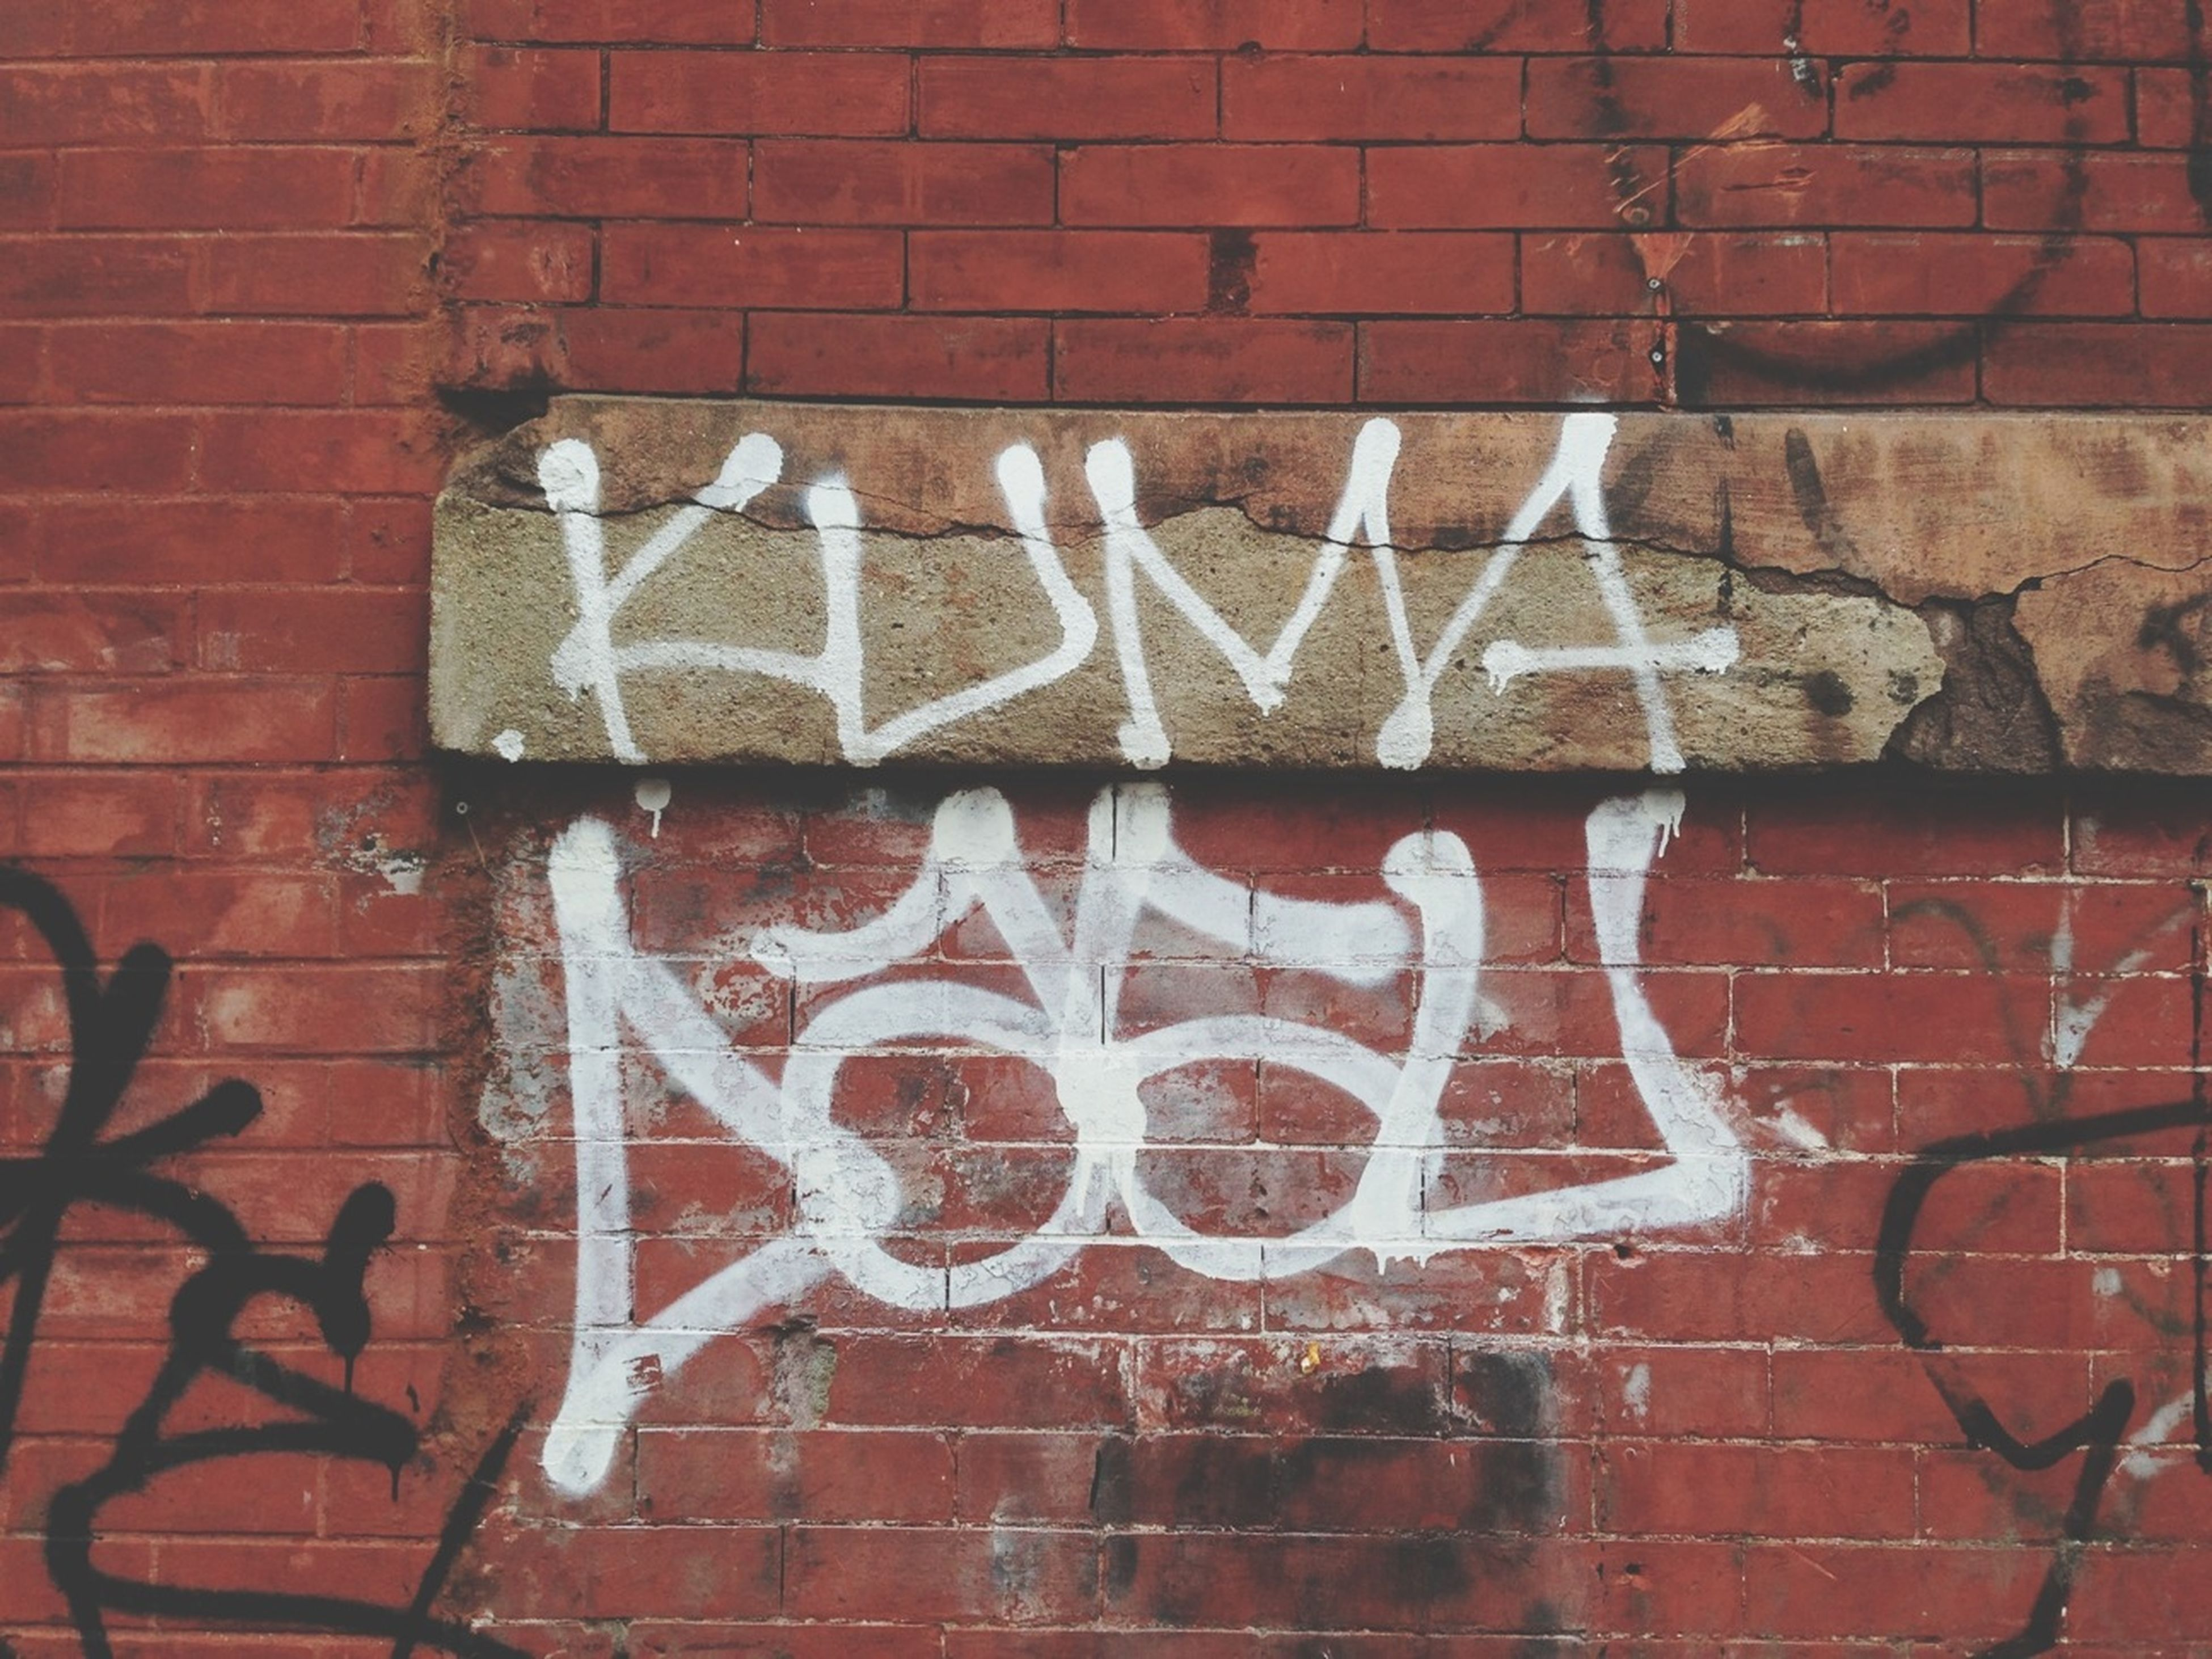 brick wall, text, red, communication, wall - building feature, western script, architecture, built structure, wall, building exterior, capital letter, graffiti, close-up, brick, no people, day, outdoors, sign, pattern, textured